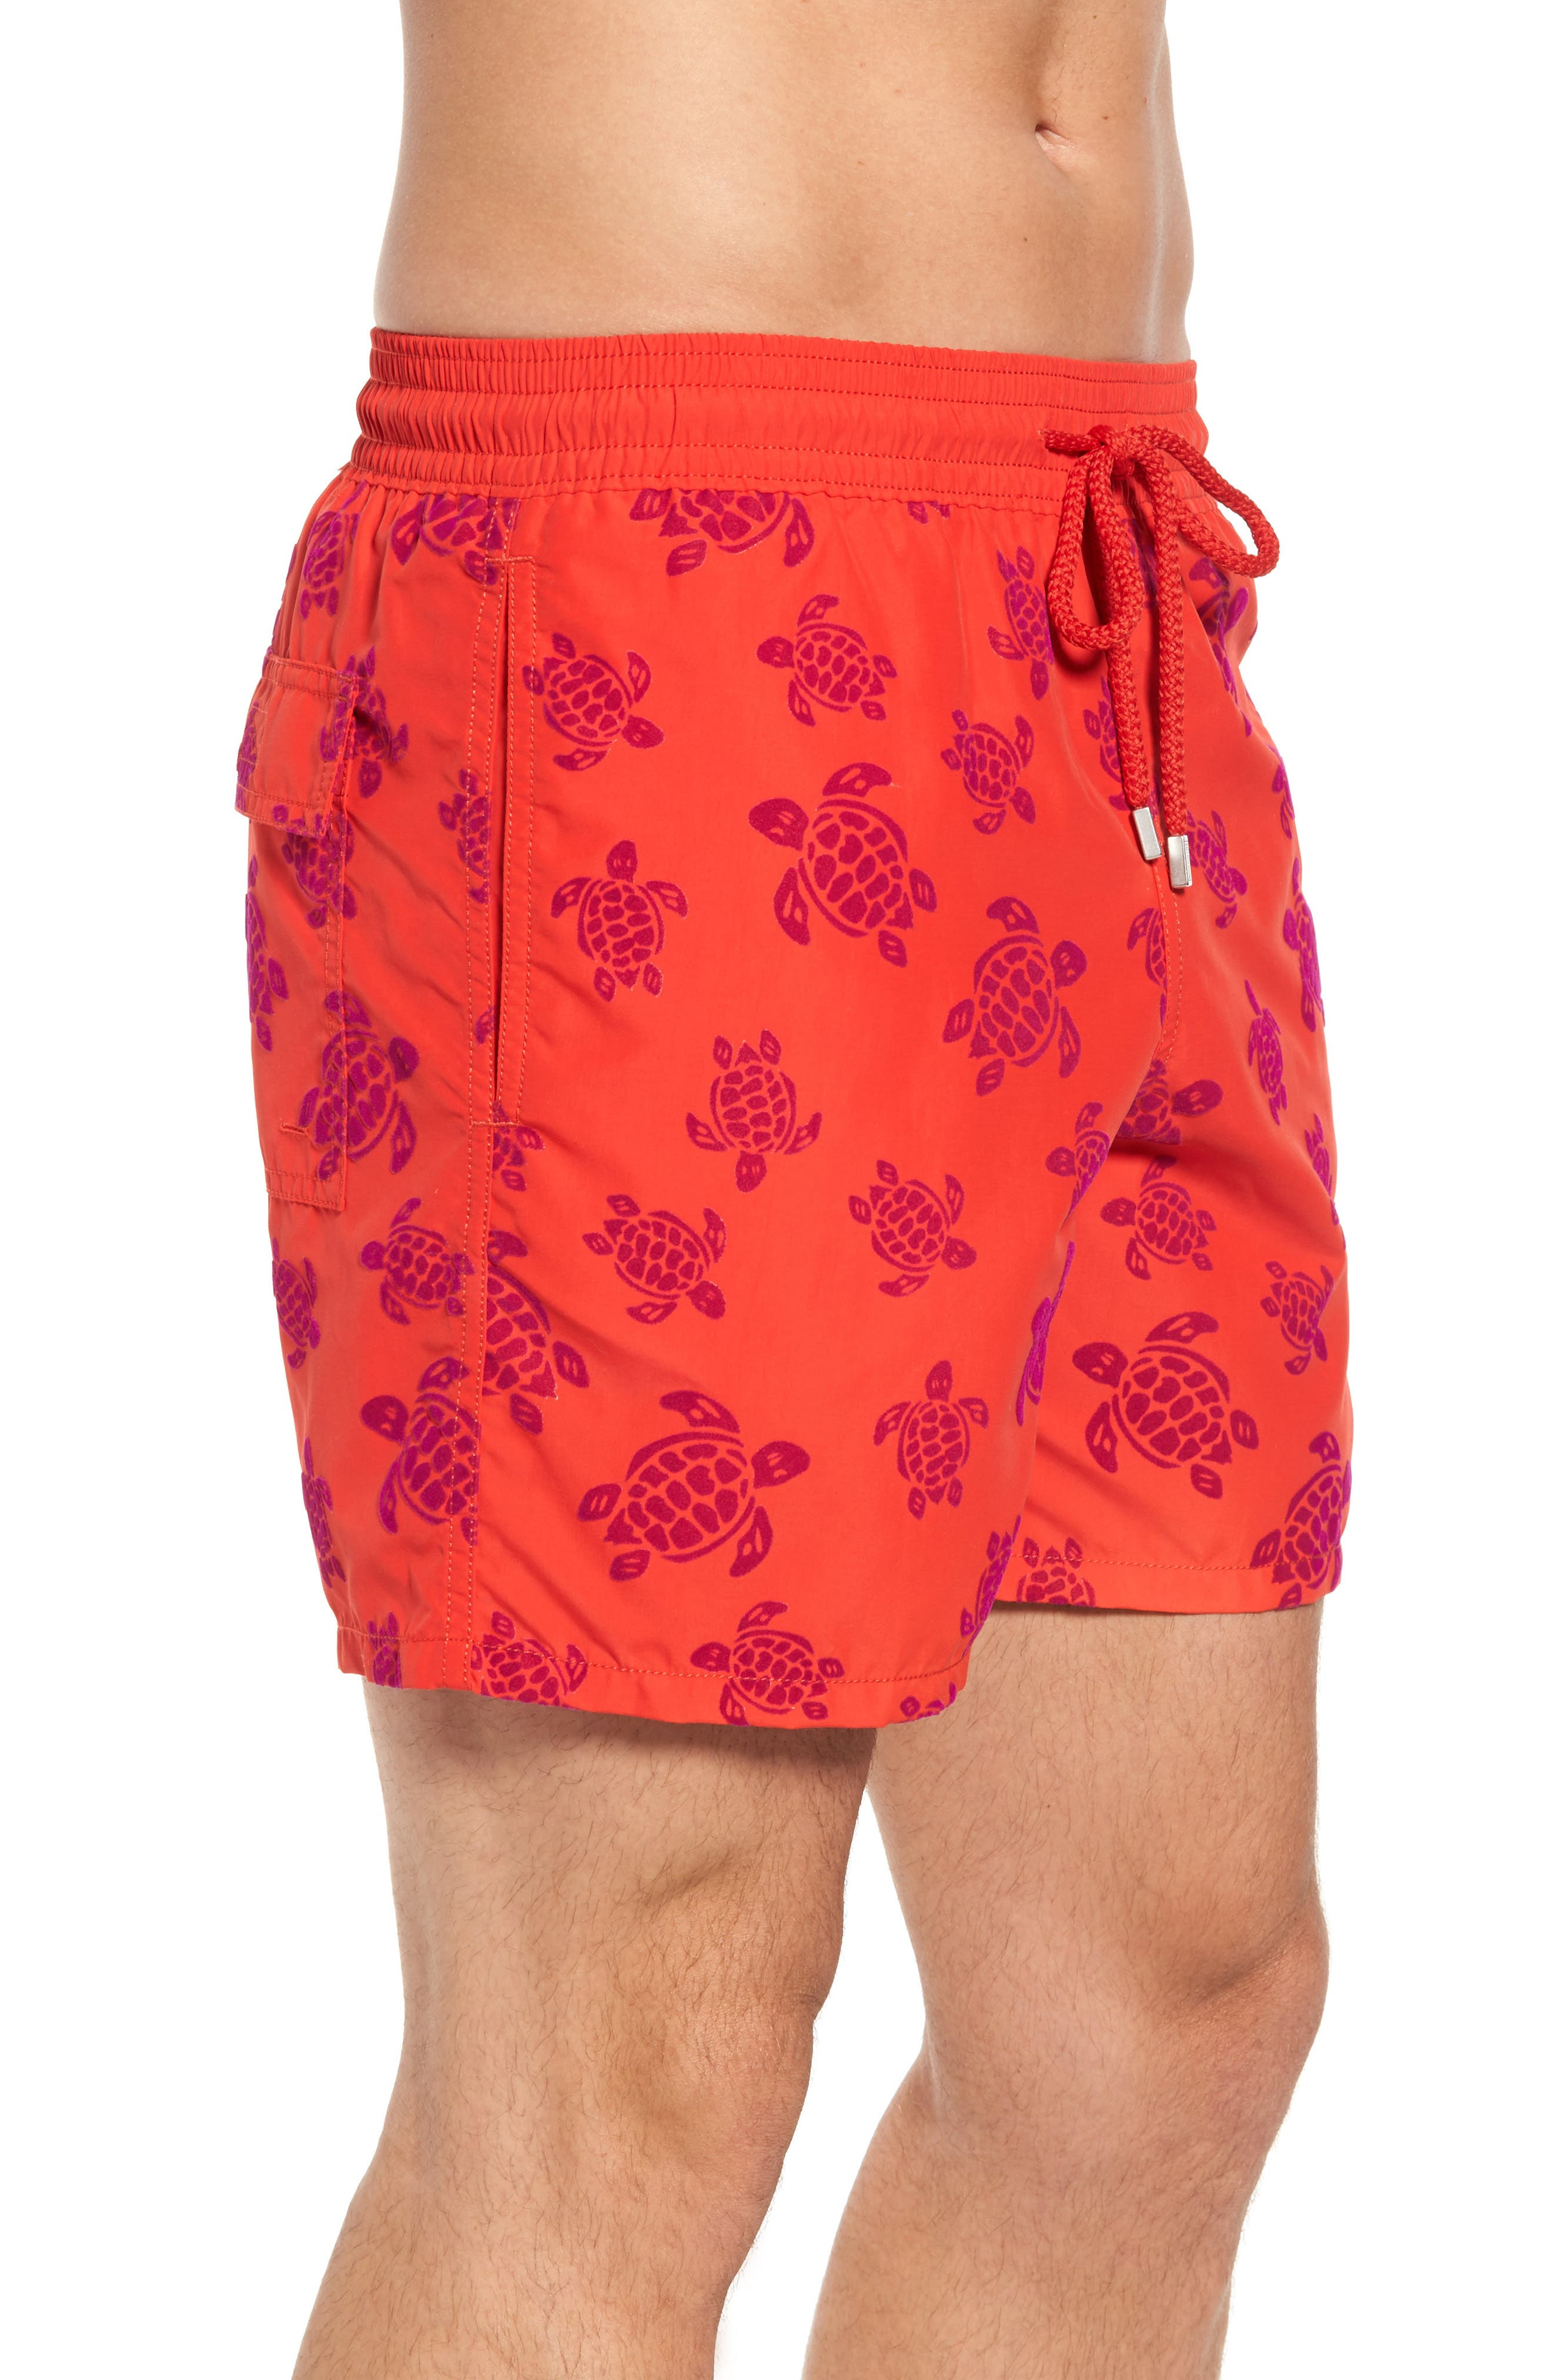 Flocked Turtles Swim Trunks,                             Alternate thumbnail 3, color,                             POPPY RED